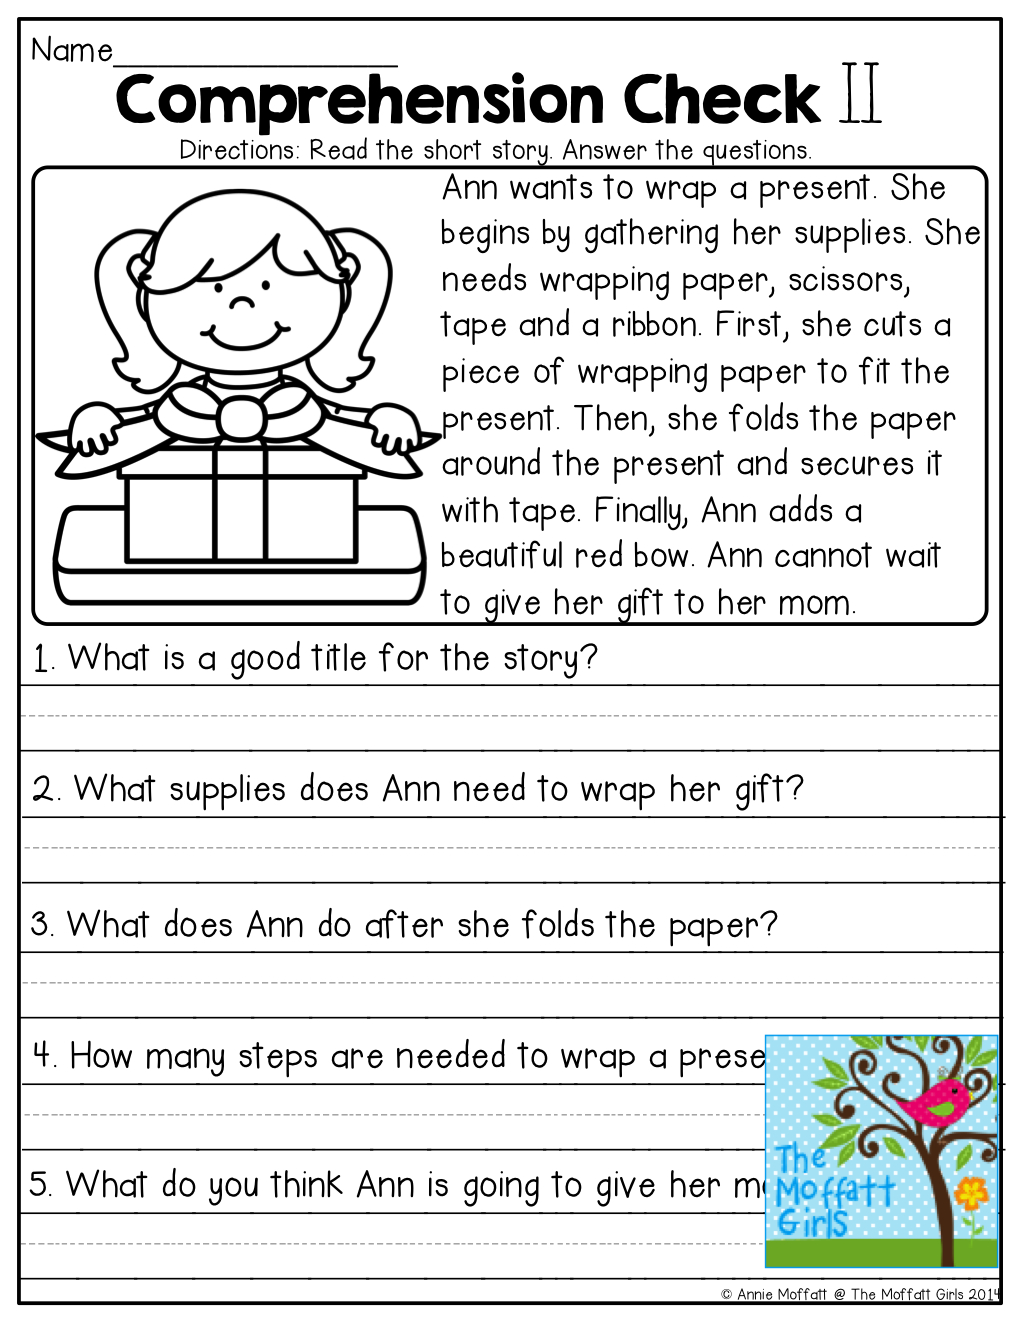 Comprehension Checks And Tons Of Other Great Printables!   Learn It - Free Printable Short Stories With Comprehension Questions